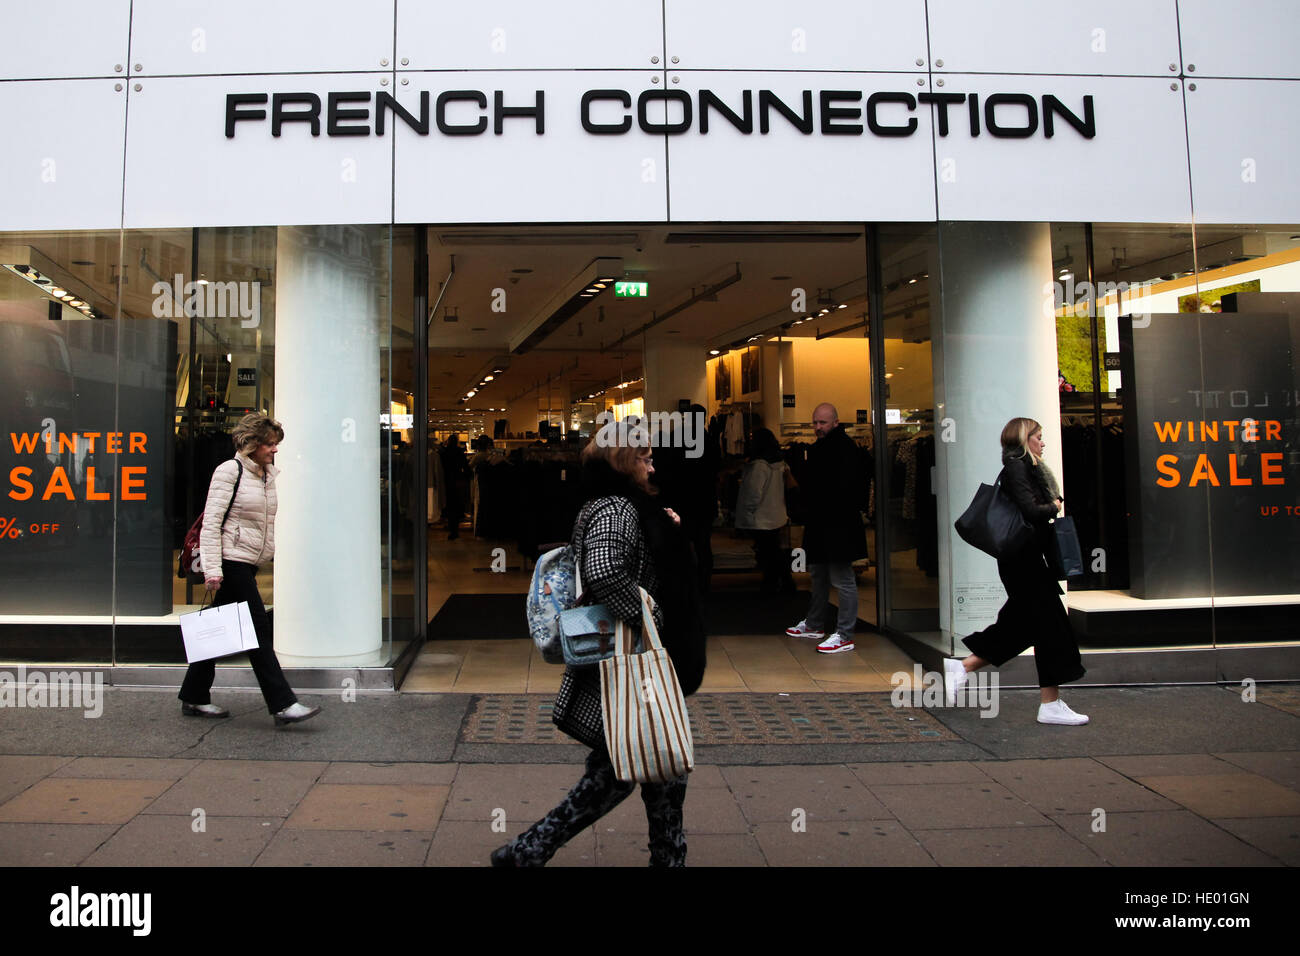 1de03448c43 French Connection Sale Stock Photos   French Connection Sale Stock ...